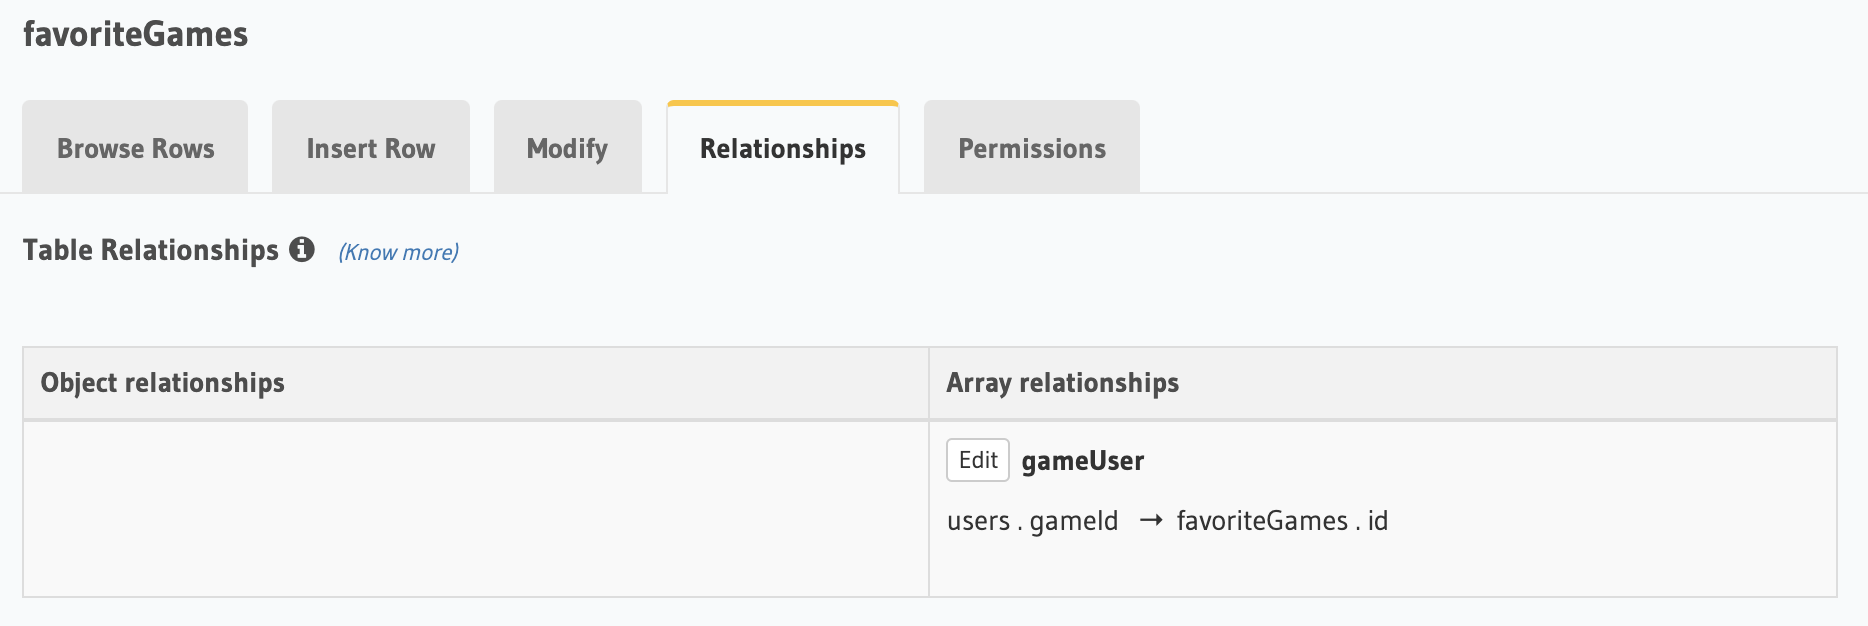 Screenshot of Hasura SQL gameUser array relationships